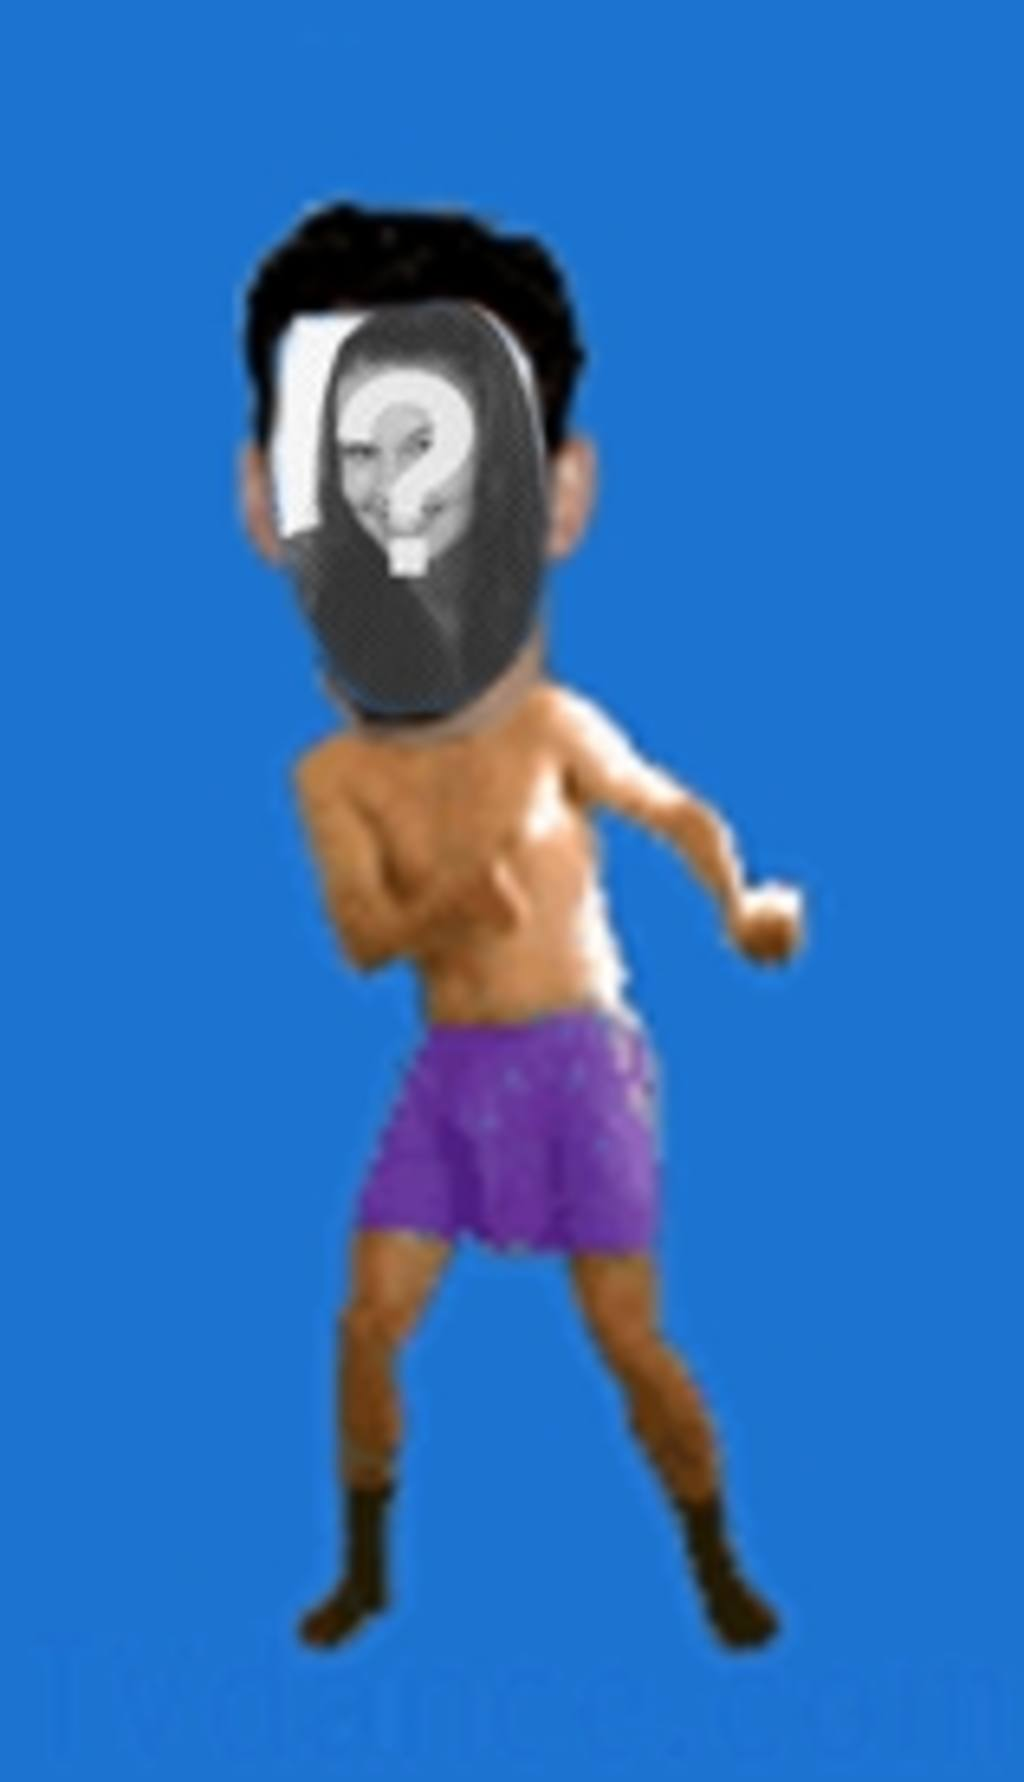 Animation of a man in his underwear dancing the boogie in which to insert the face of your choice